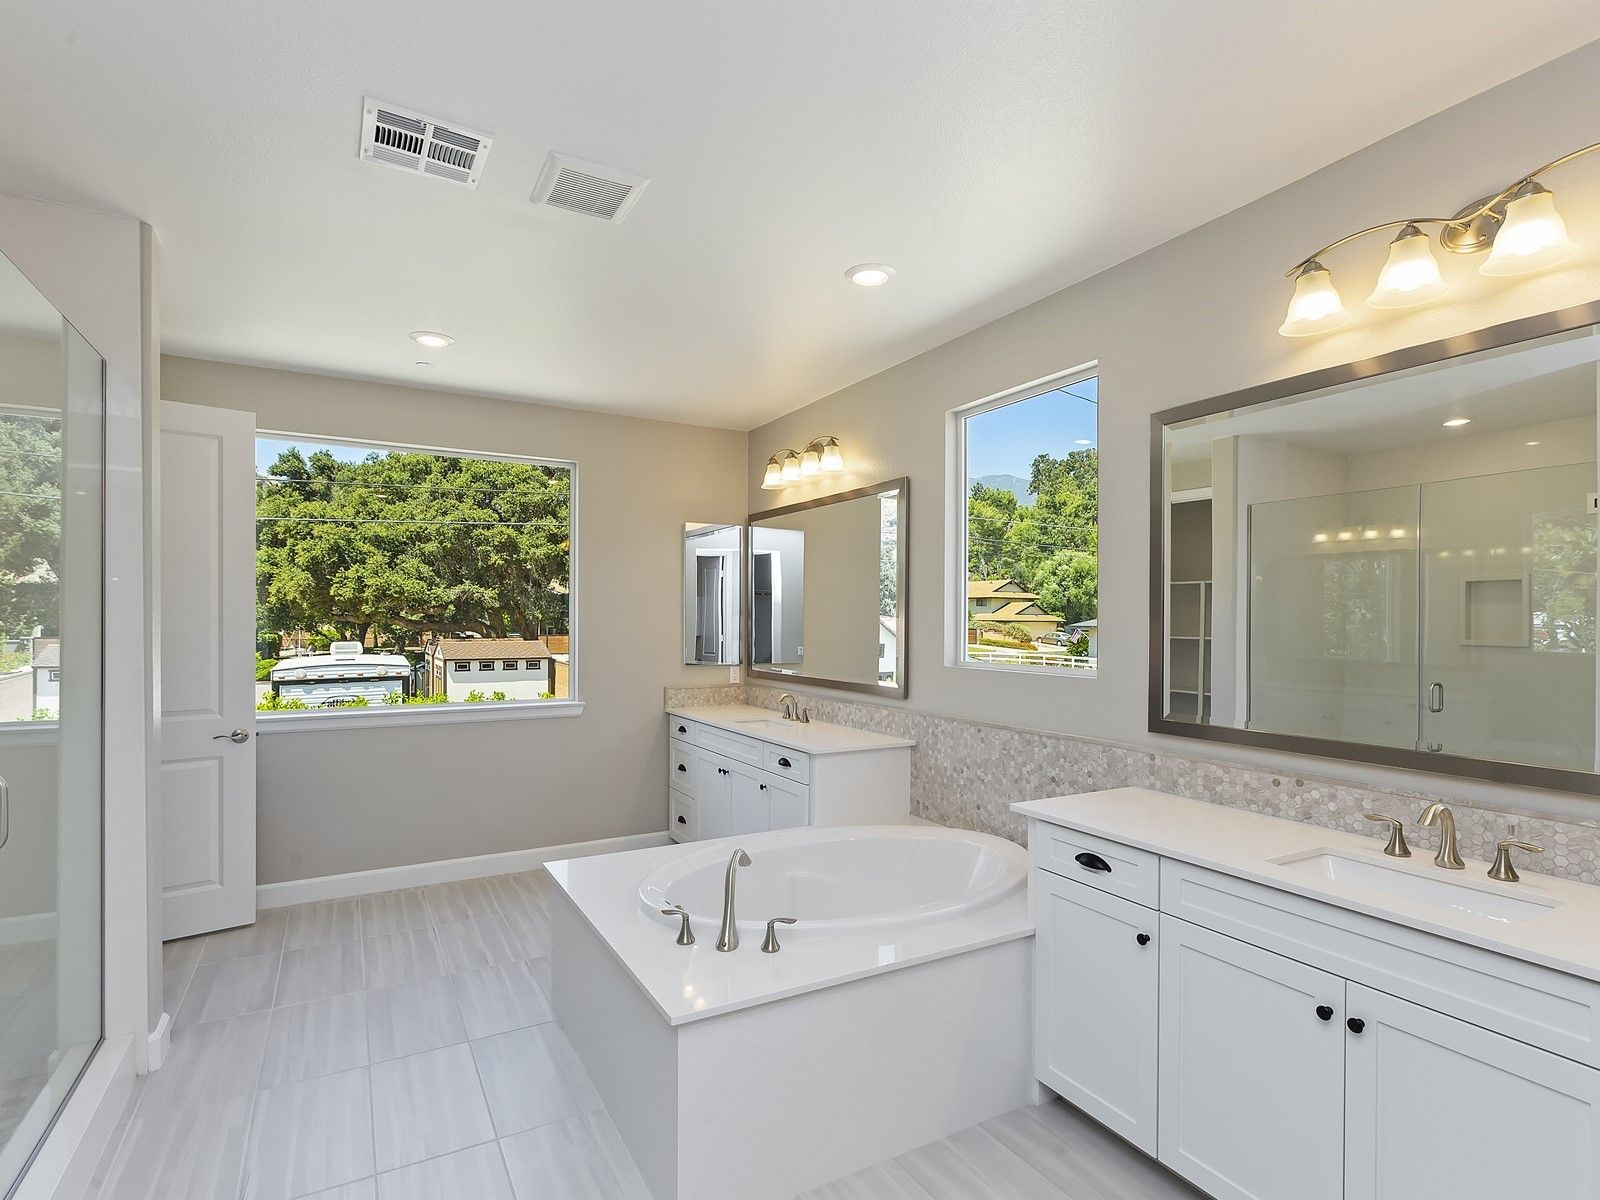 Bathroom featured in the Residence 1 By Meritage Homes in Los Angeles, CA